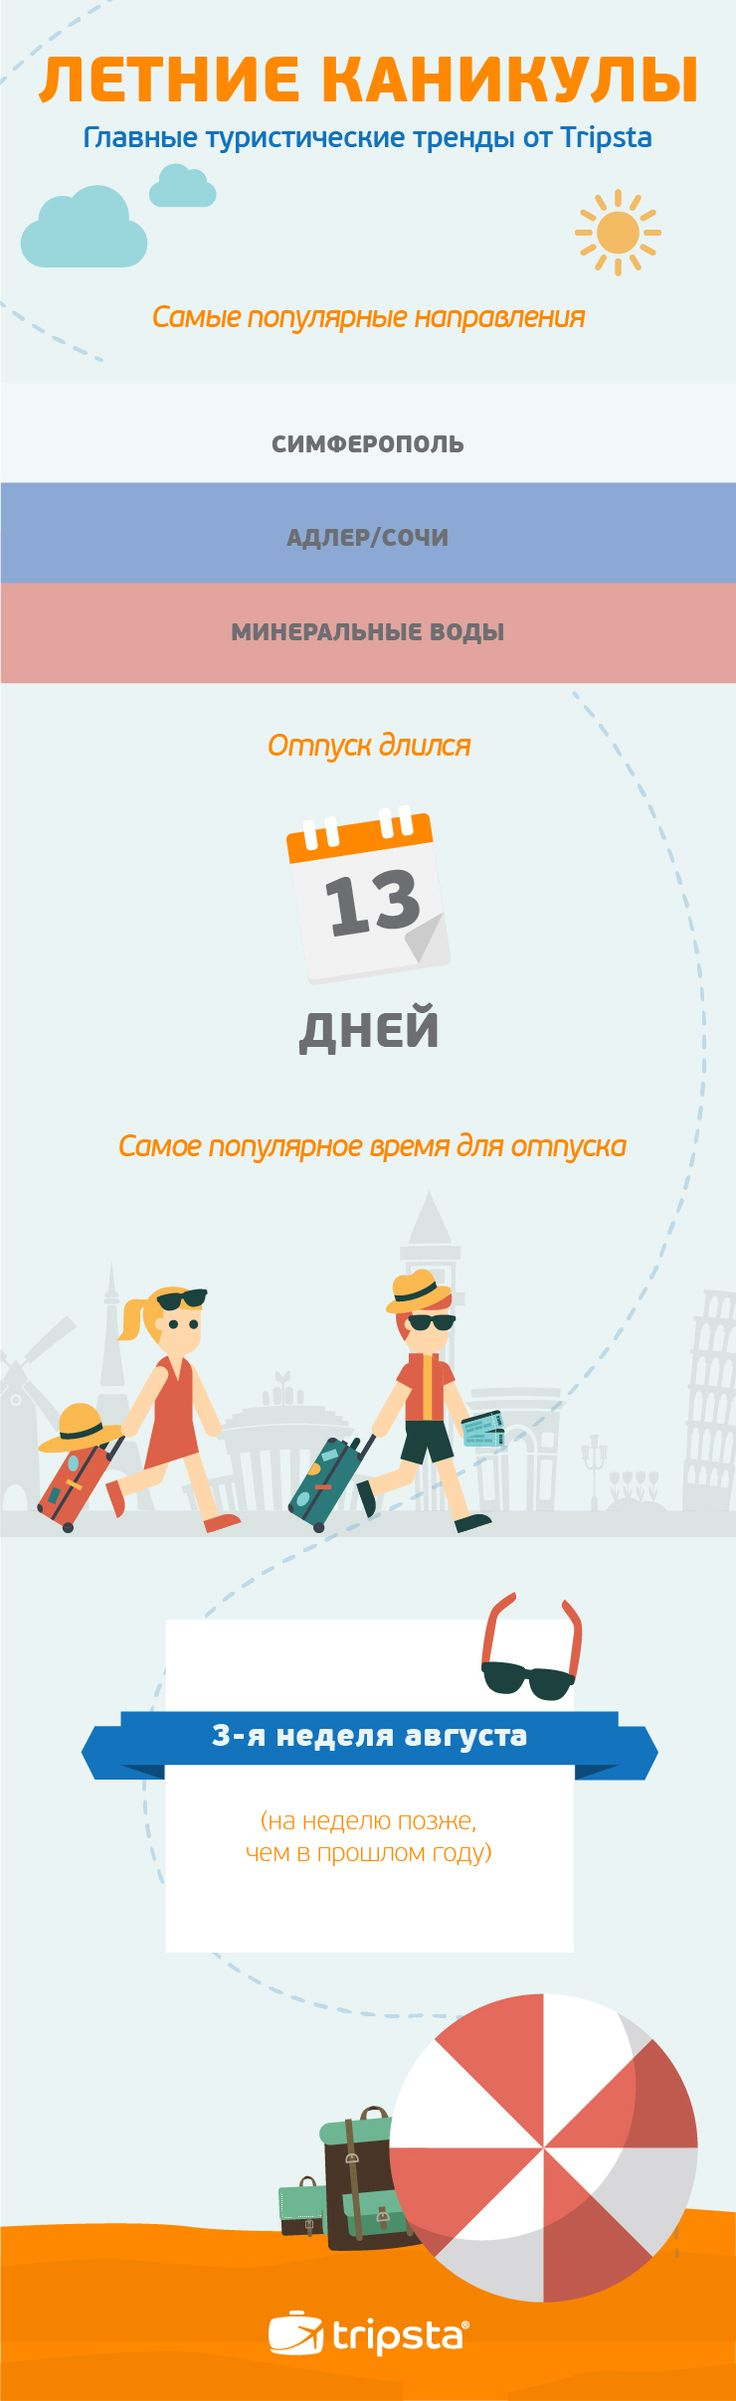 Summer Trends 2014 for Russia  #Tripsta #Infographic